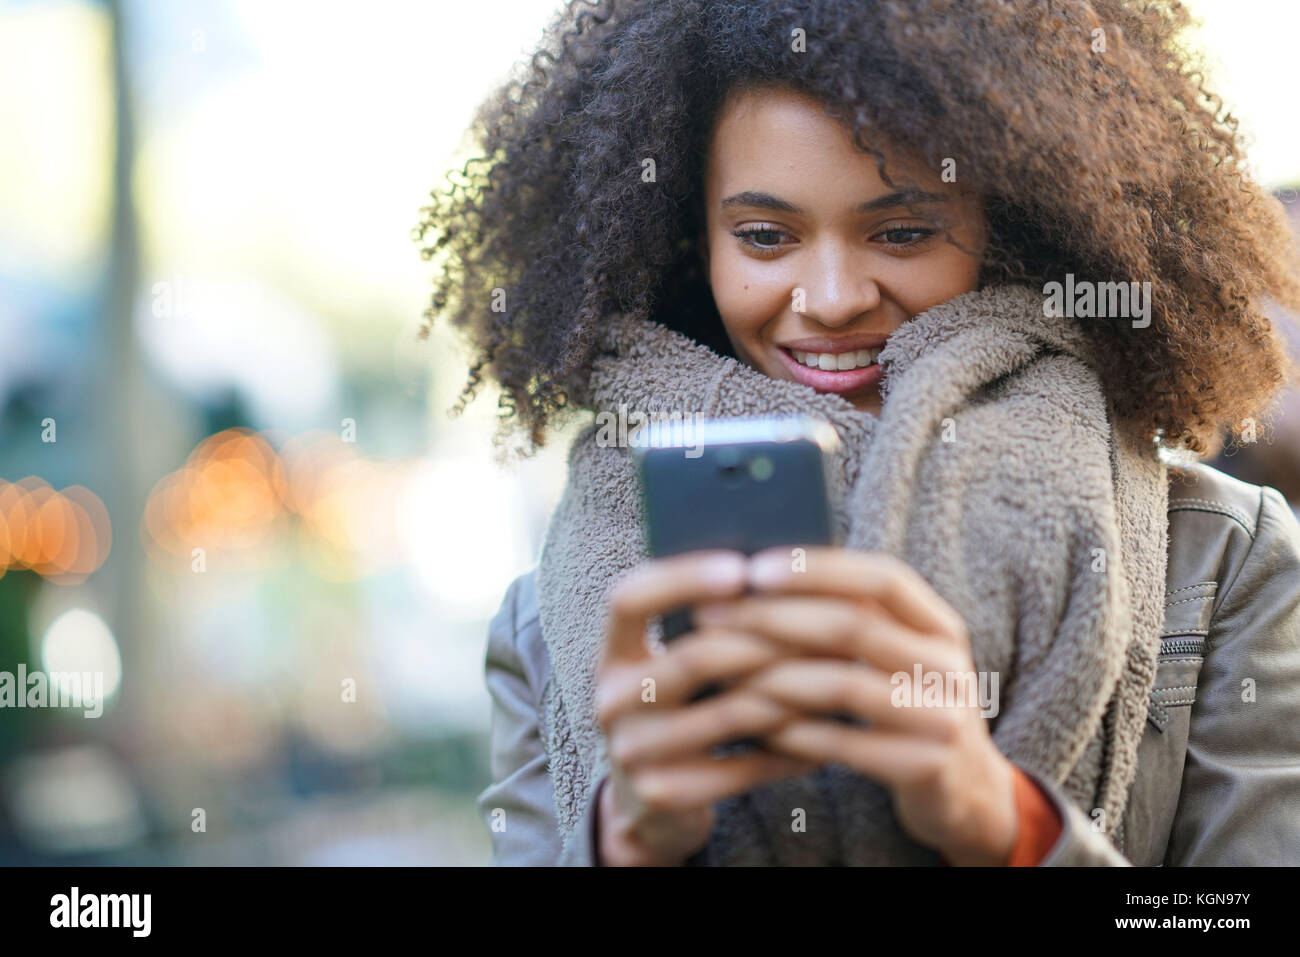 Girl sitting at Bryant park, sending message with smartphone - Stock Image